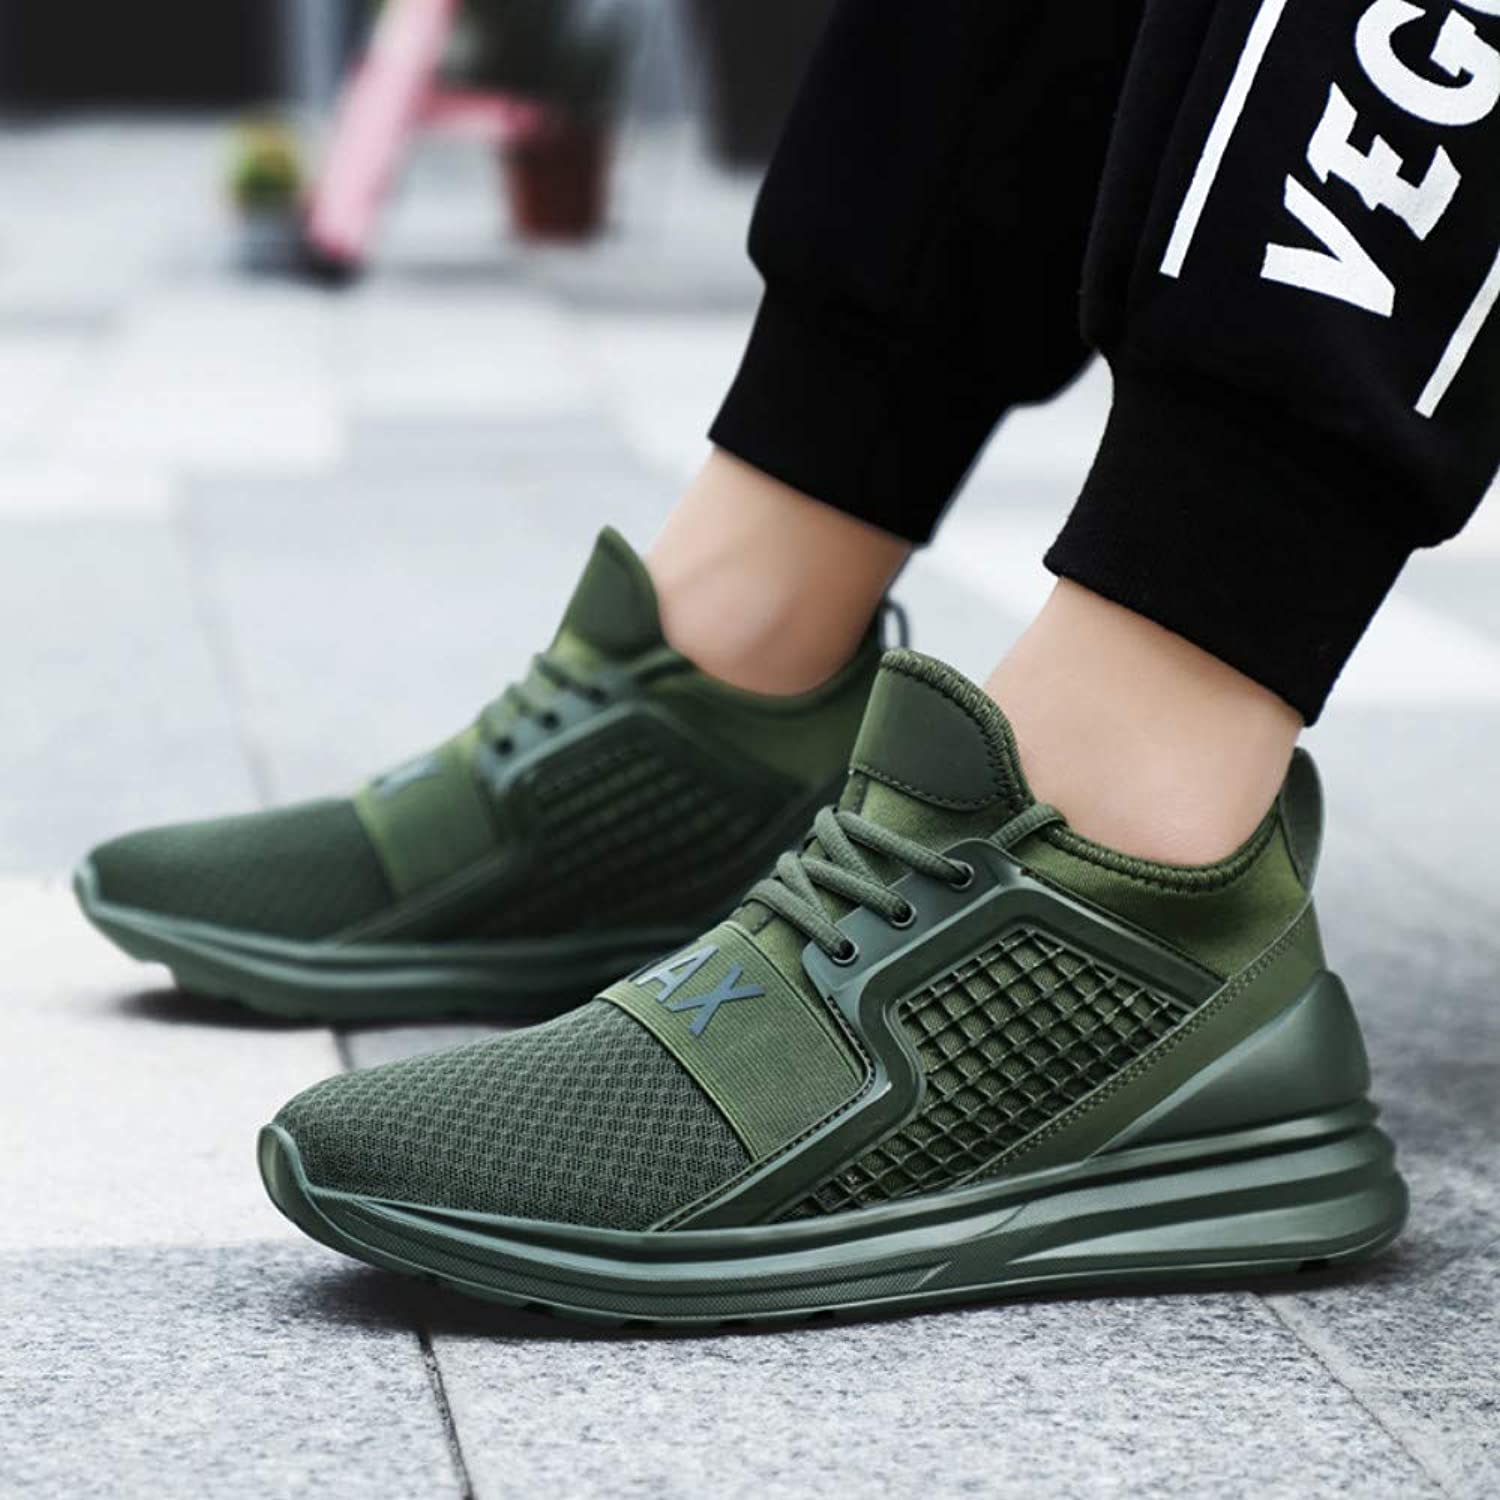 YAYADI Men'S Sneakers Breathable Air Mesh Men Running shoes Training Althetic Outdoor Sport shoes Green Sneakers